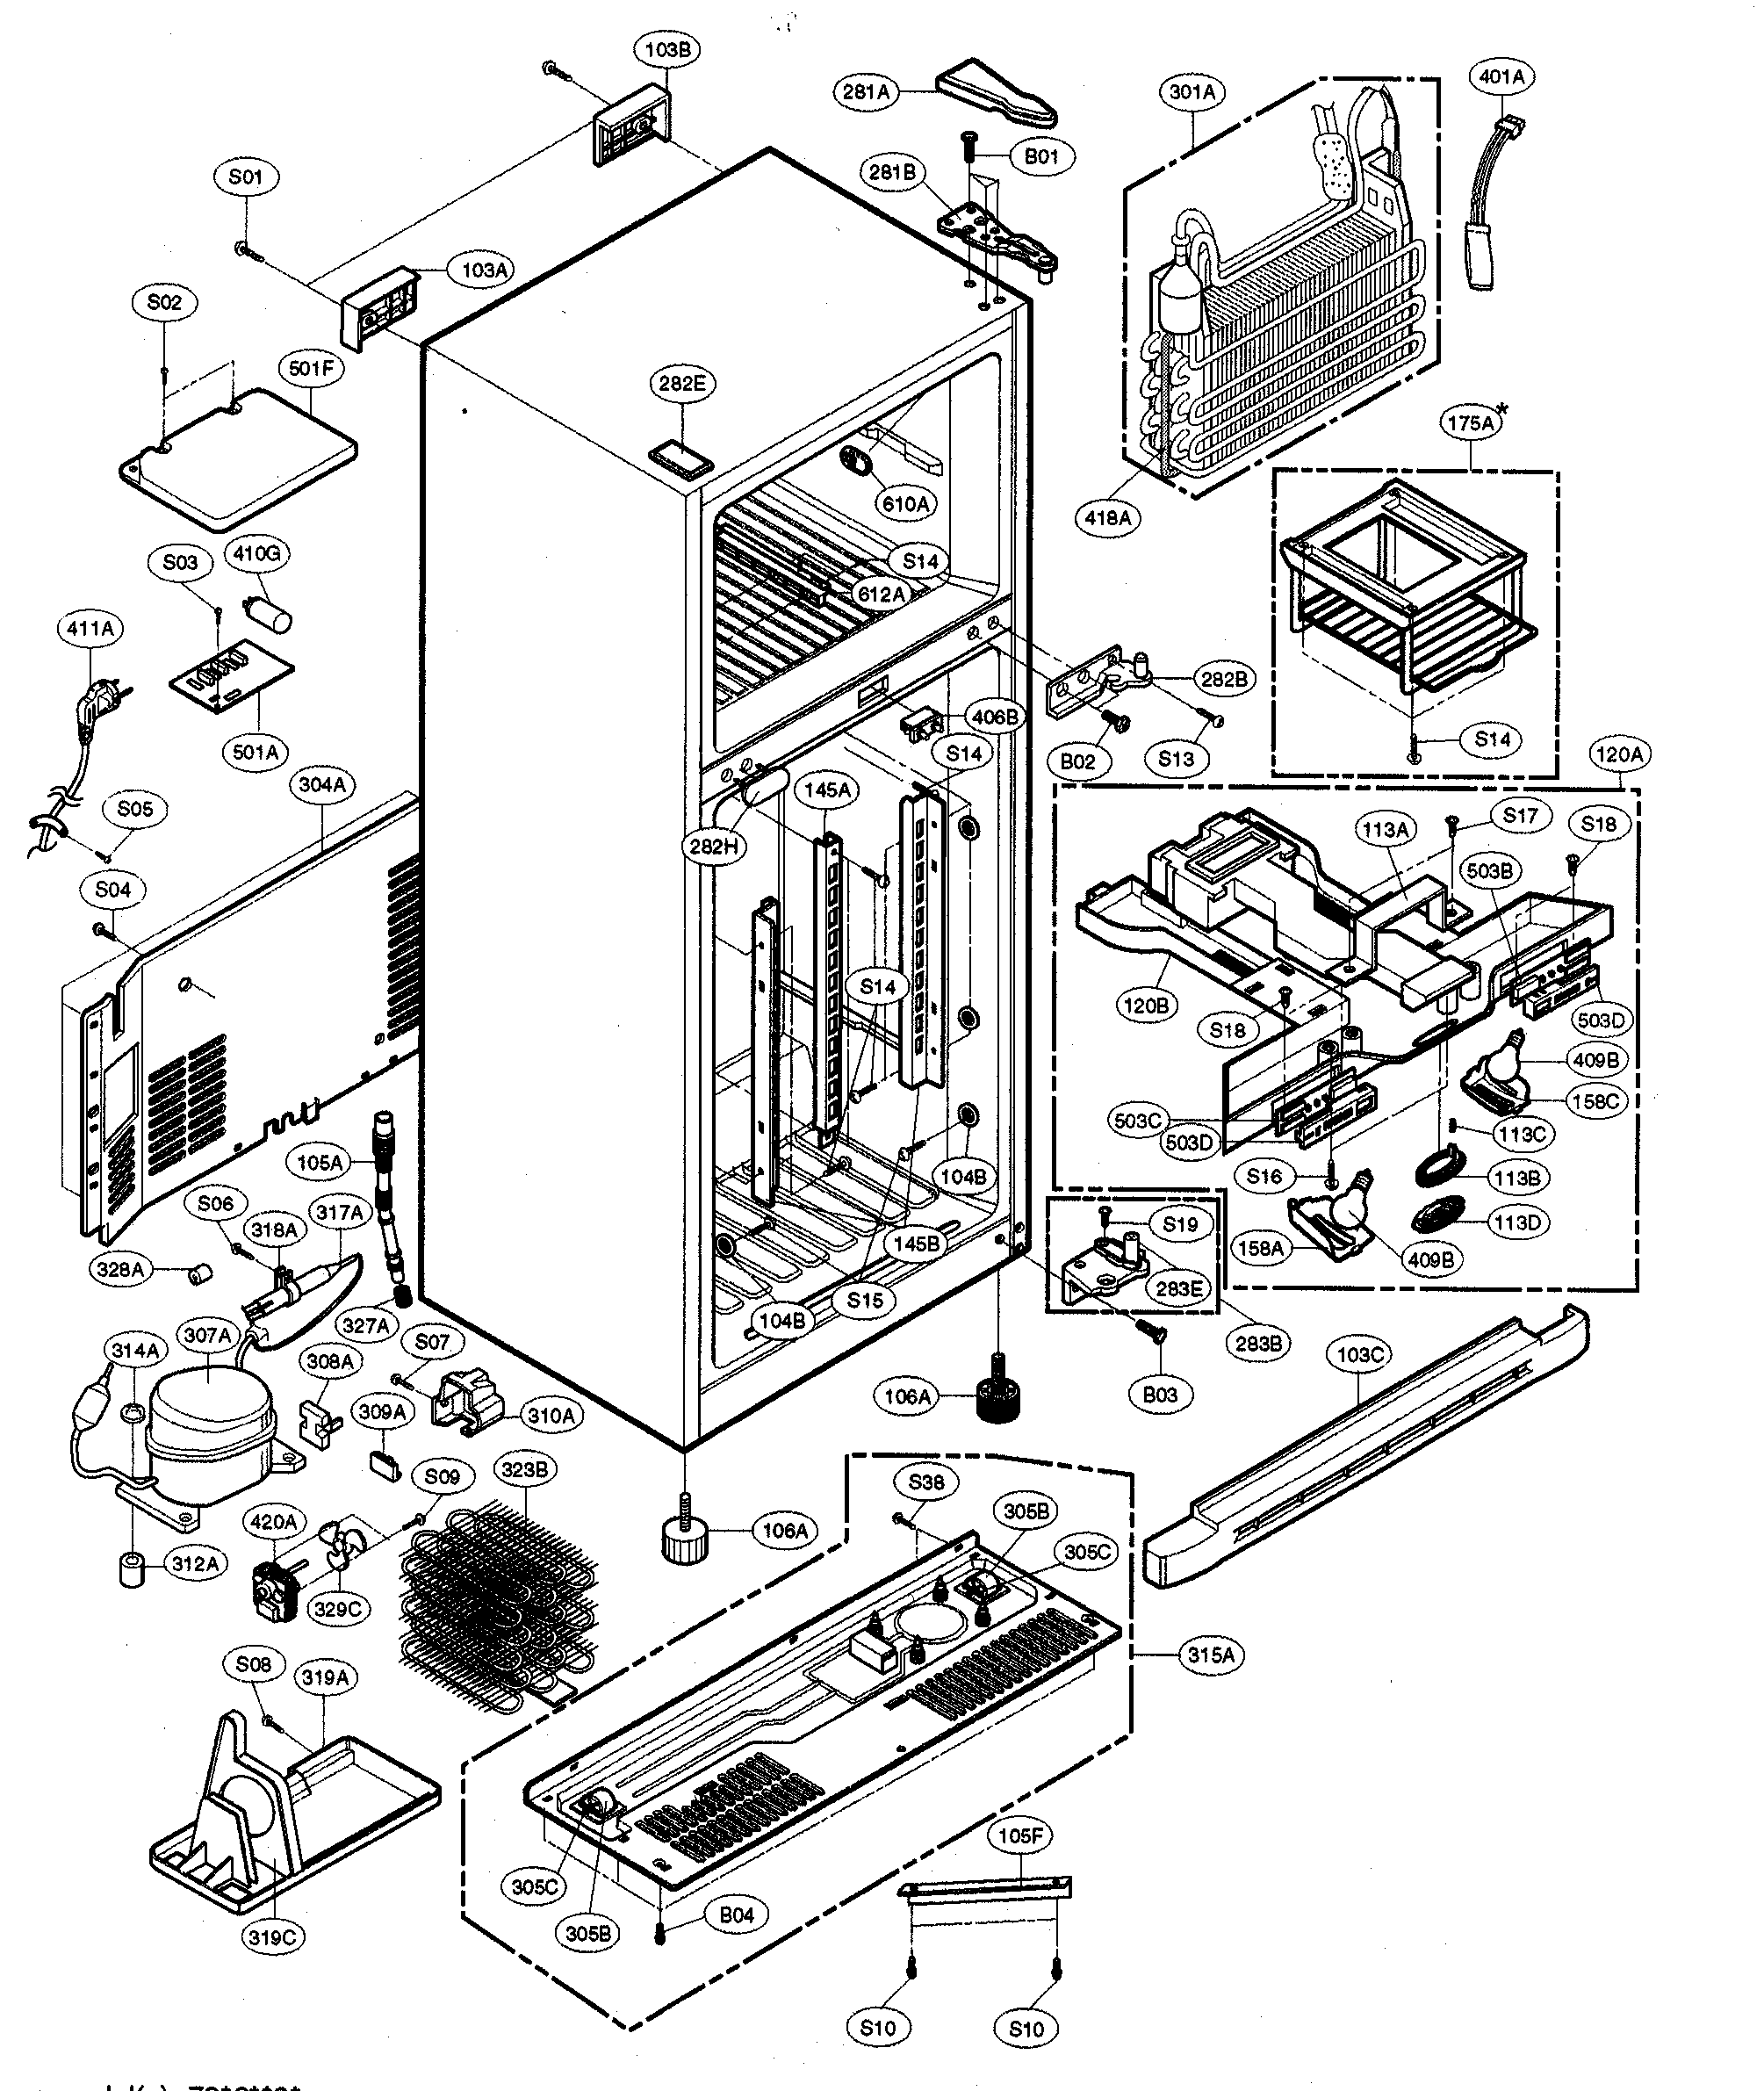 BE_0485] Refrigerator Parts Diagram On Kenmore 795 Refrigerator Parts  Diagram Free DiagramPical Joami Kargi Peted Tivexi Lious Inrebe Mohammedshrine Librar Wiring 101